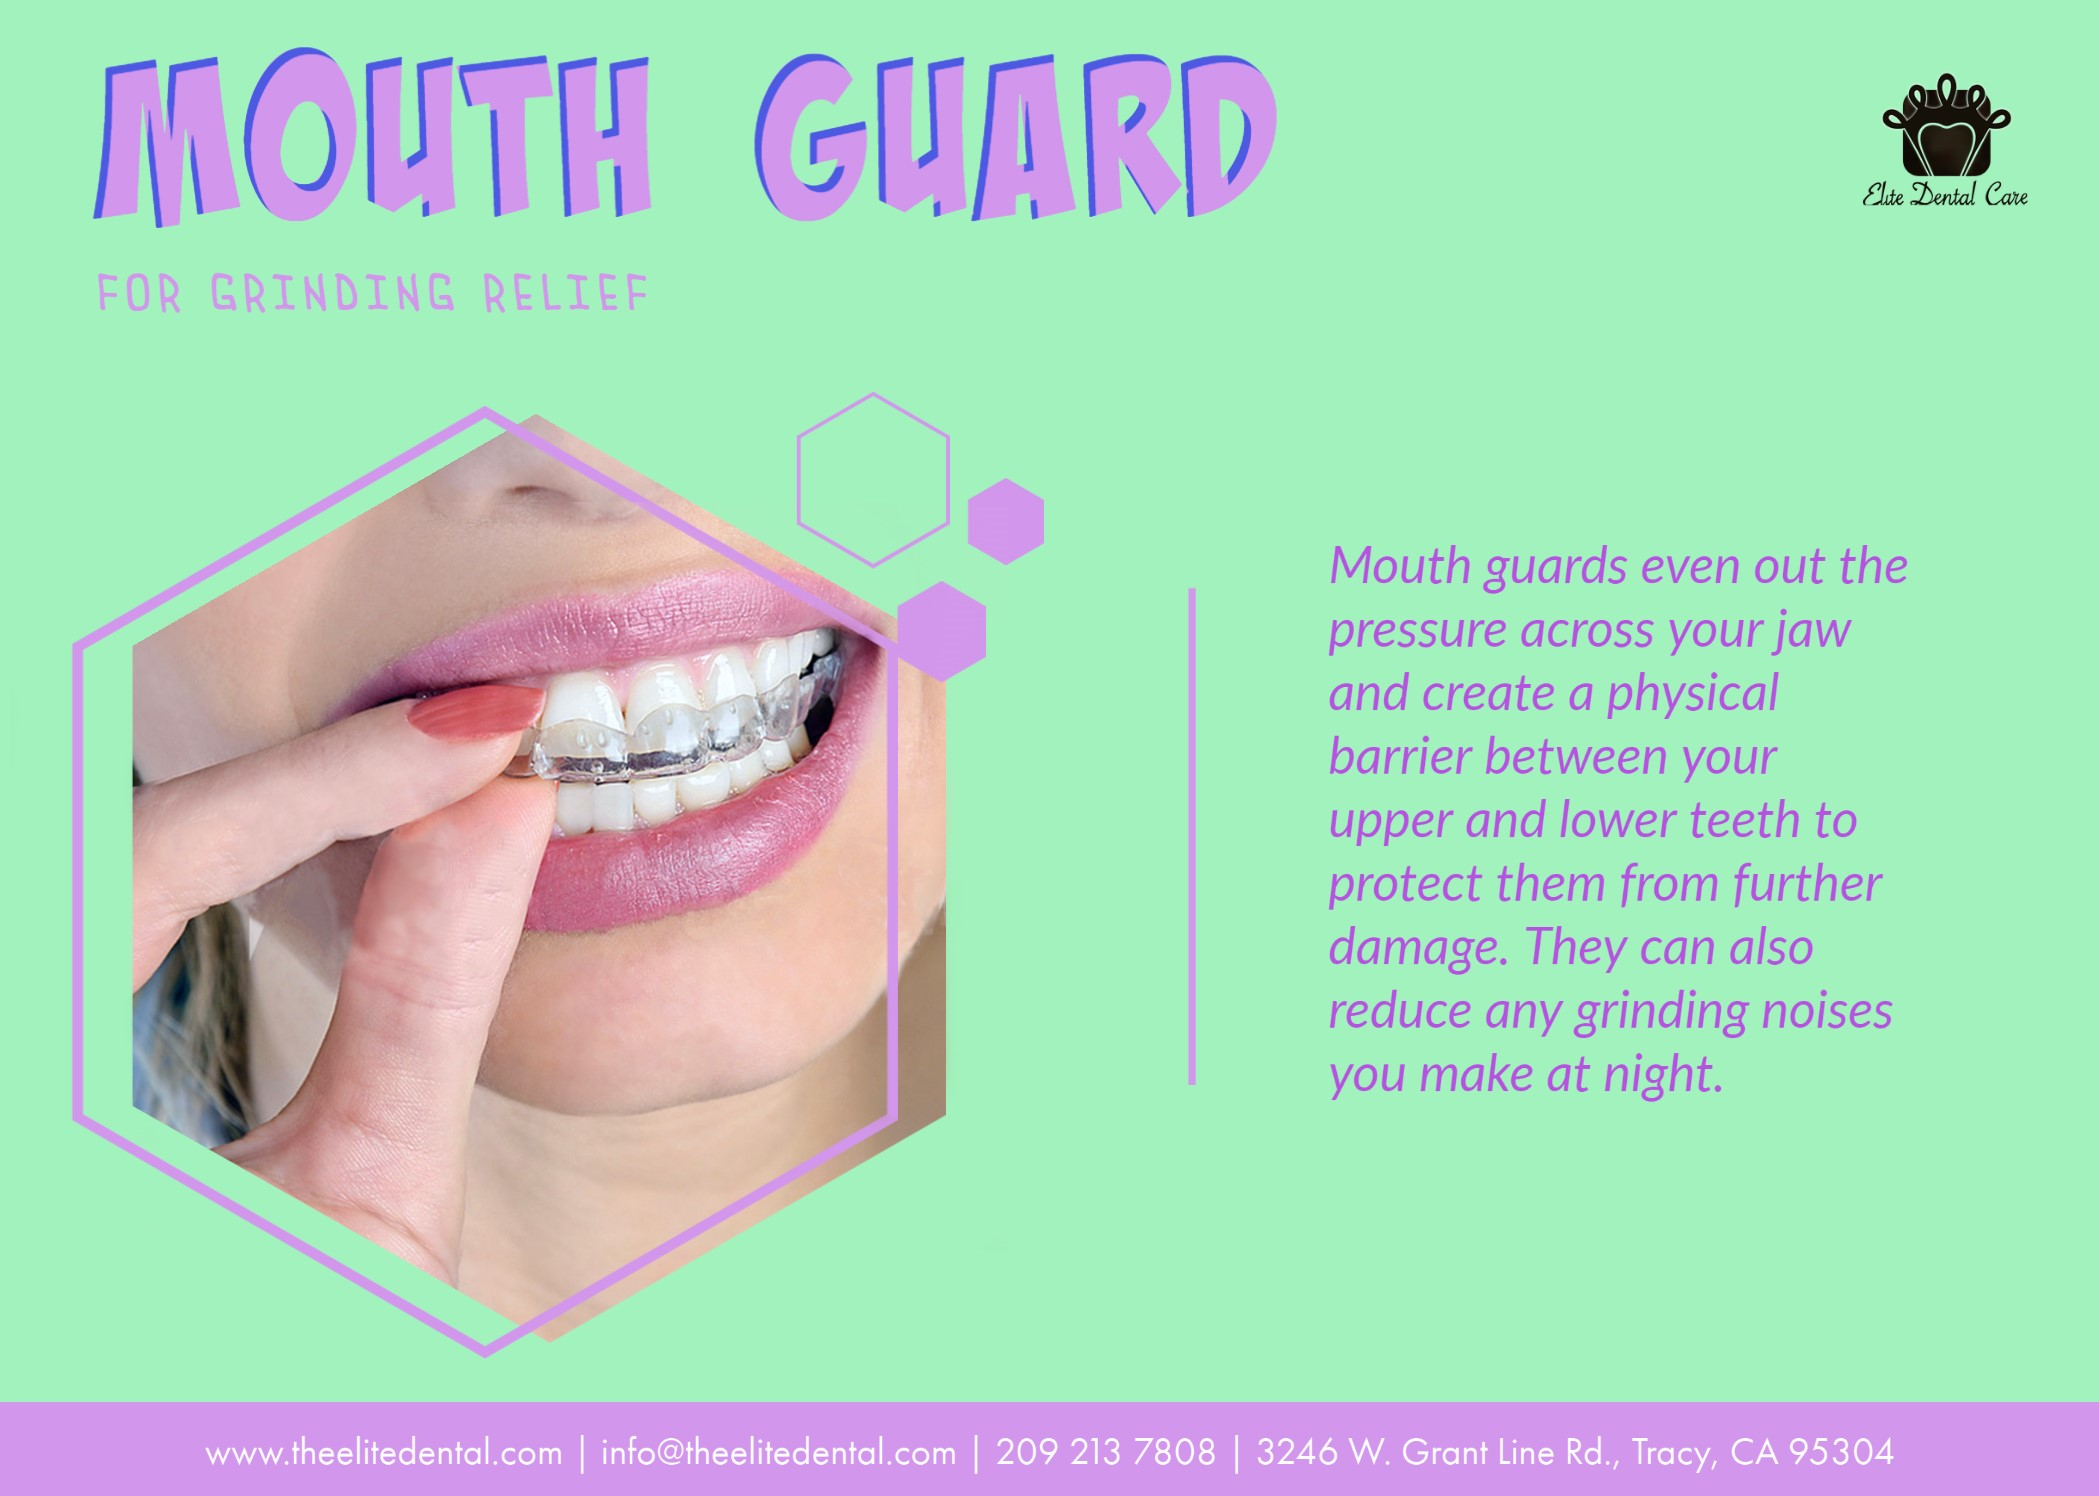 MOUTHGUARD FOR GRINDING RELIEF